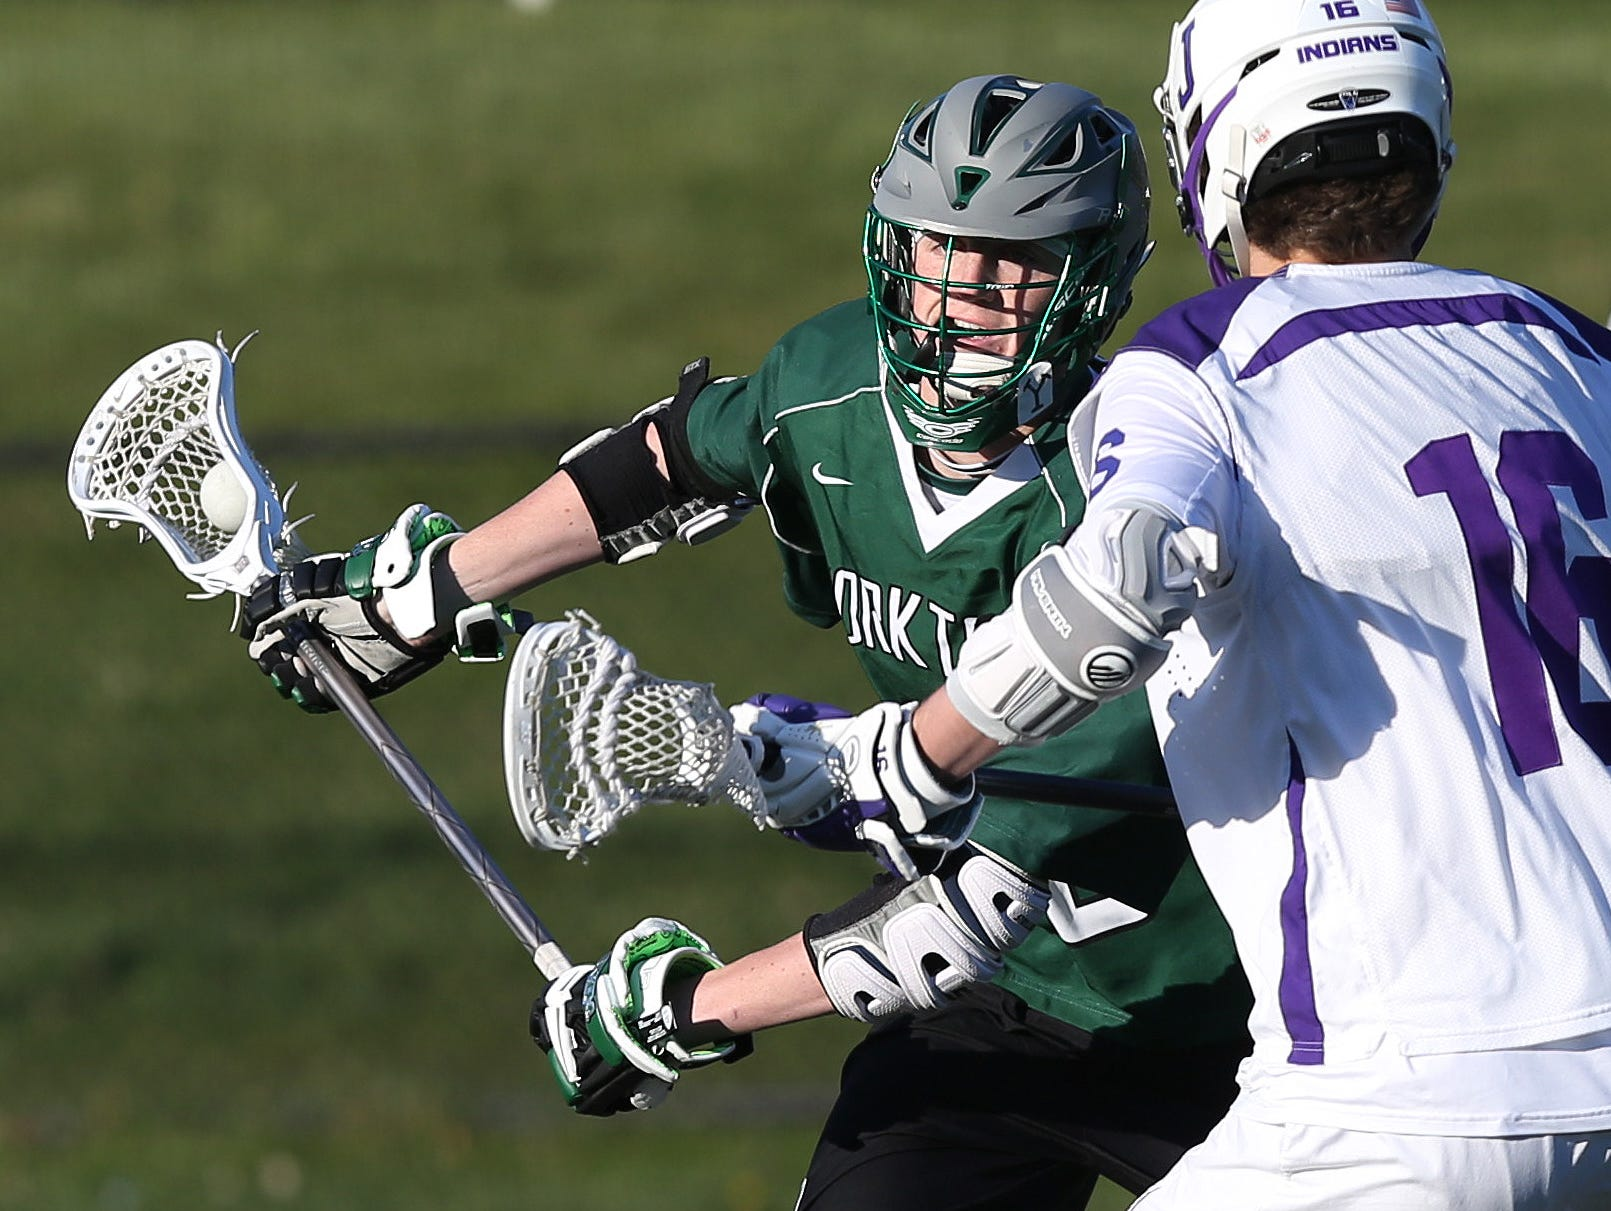 Yorktown's Kyle Casey (15) tries to get around John Jay's William Slater (16) during a boys lacrosse game at John Jay High School in Cross River April 14, 2016. Yorktown won the game 9-7.